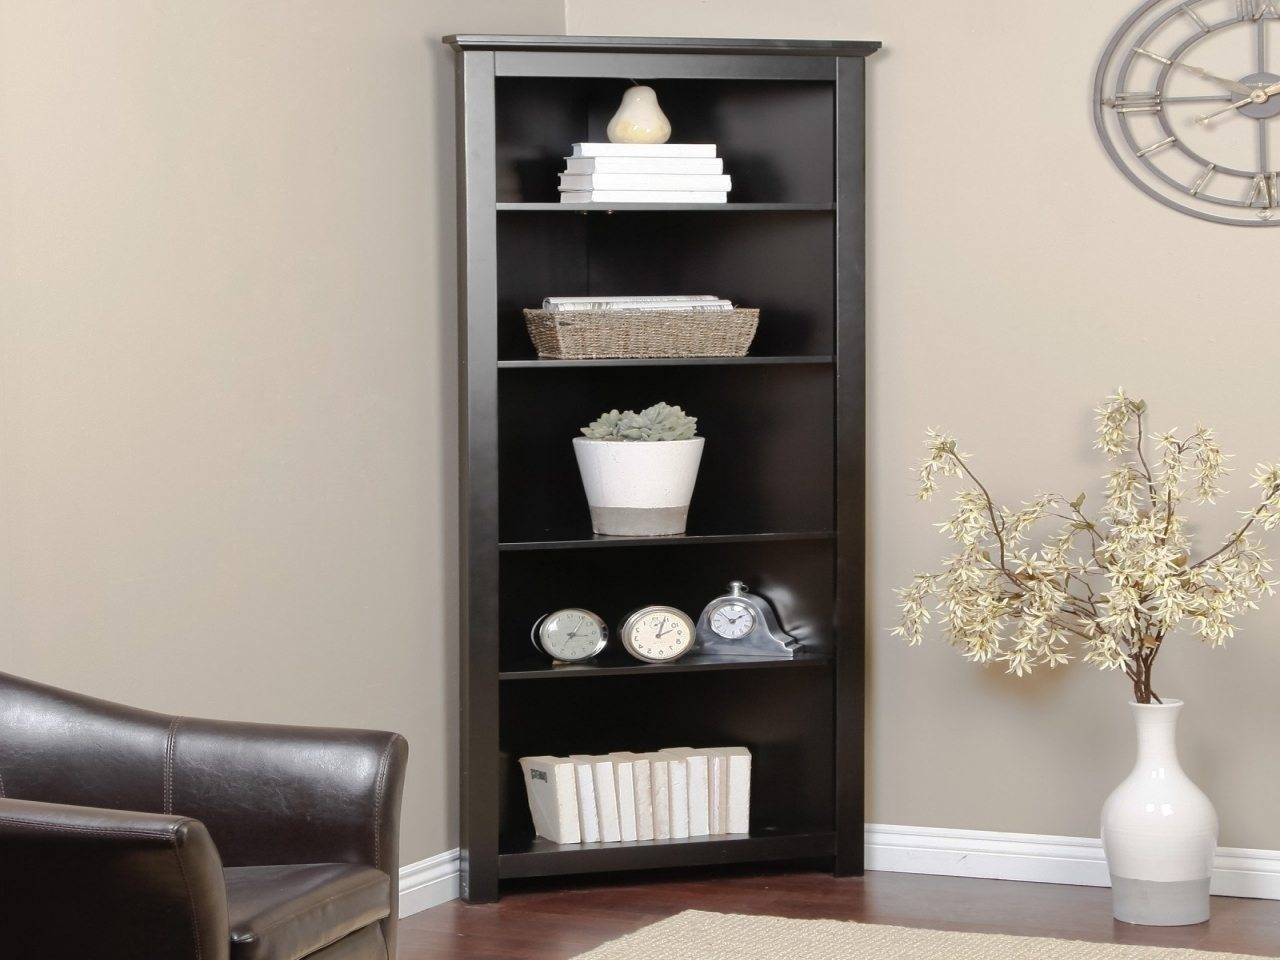 Awesome Tall Corner Shelf Royals Courage Maximize Area